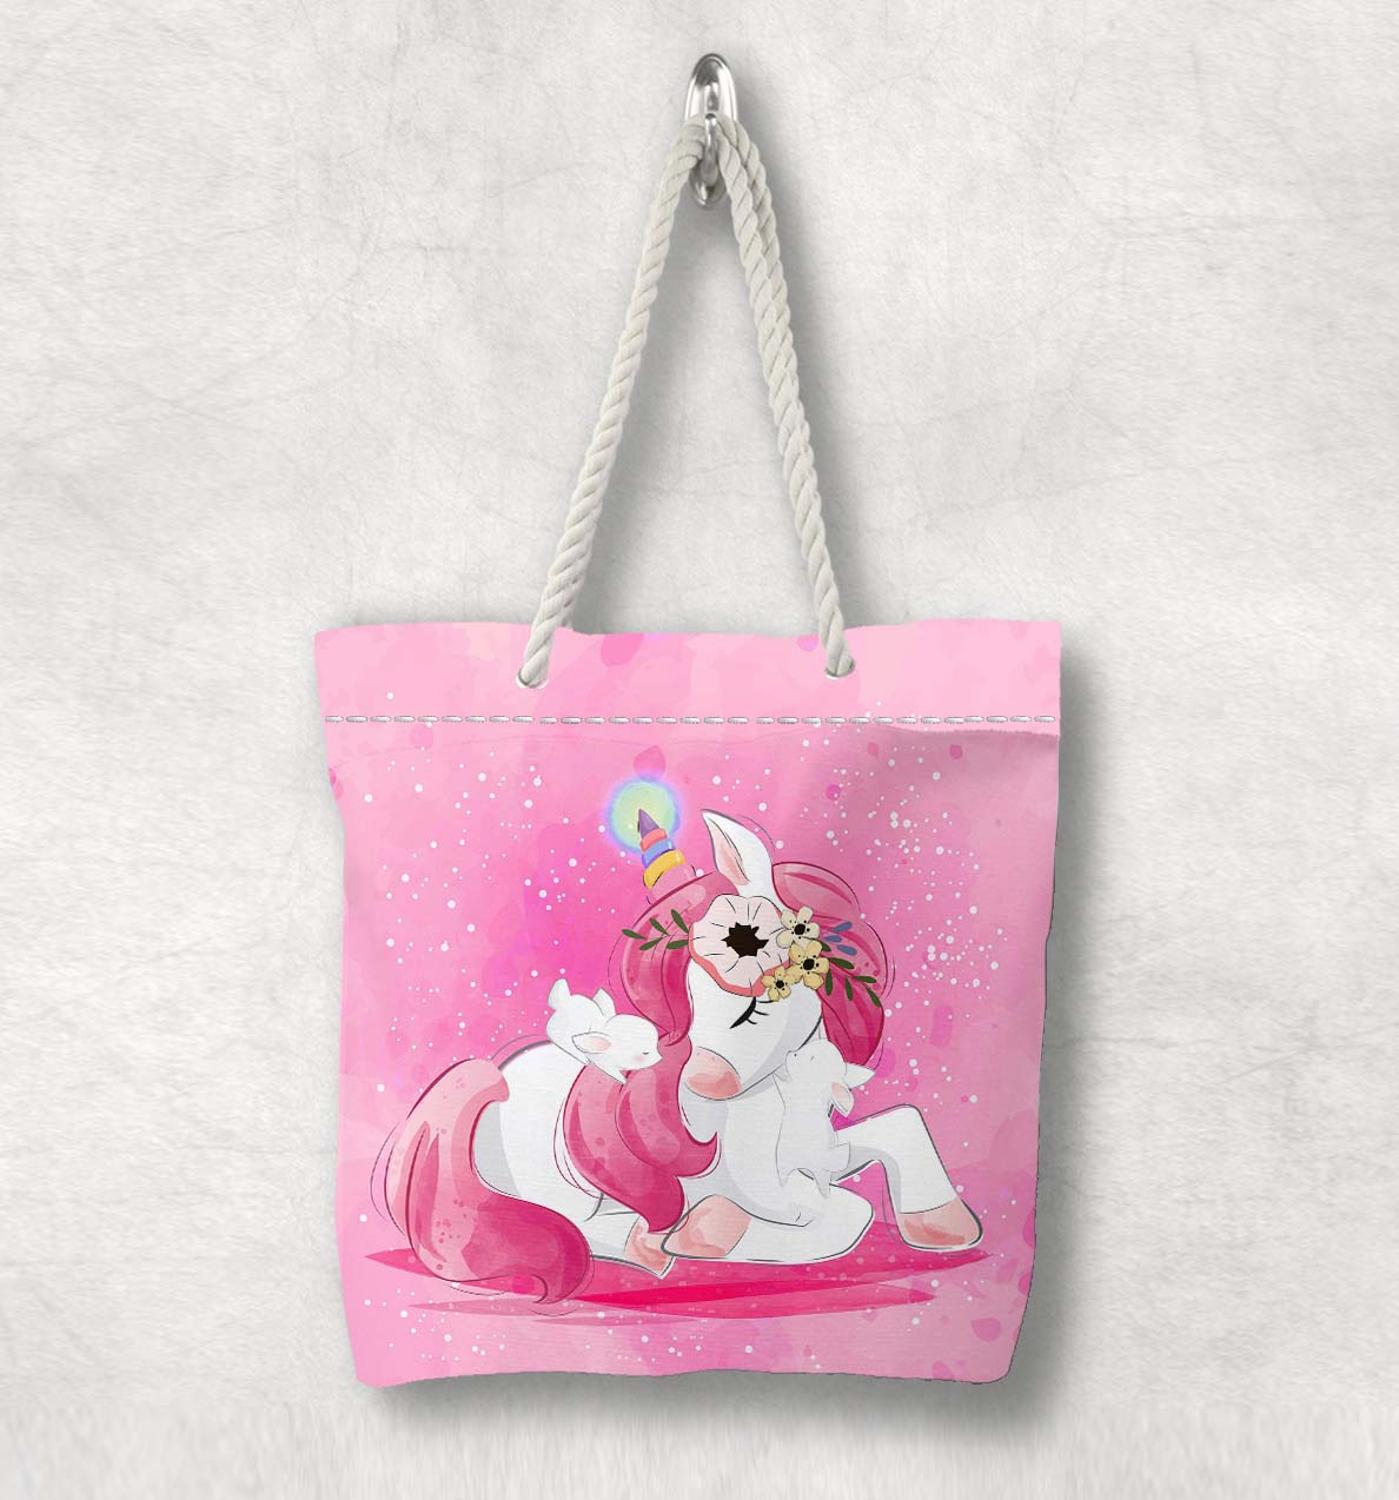 Else Pink Cute Sweet Unicorn Horses New Fashion White Rope Handle Canvas Bag  Cartoon Print Zippered Tote Bag Shoulder Bag